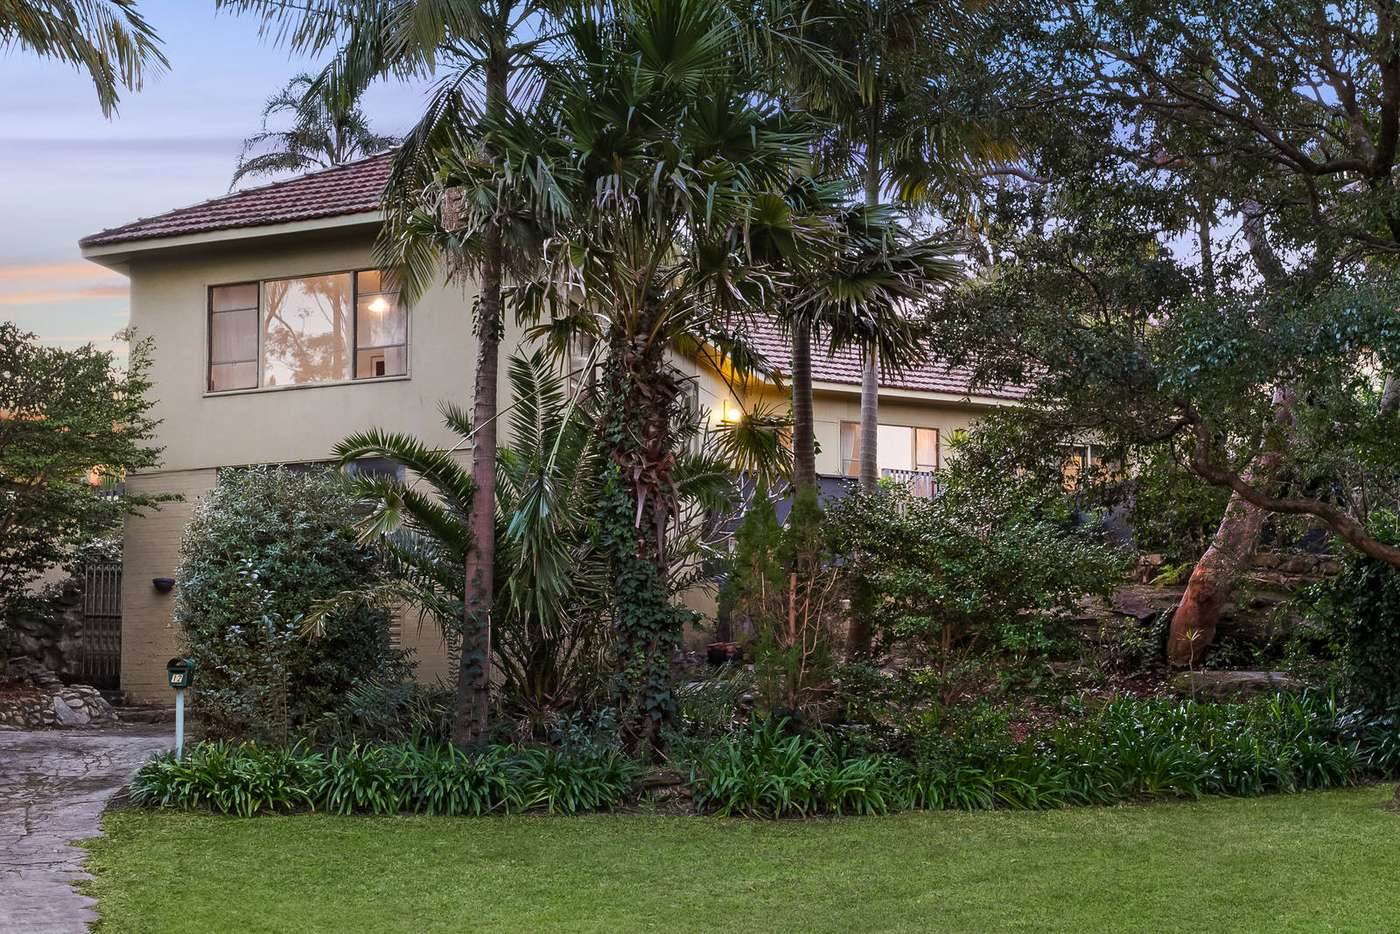 Main view of Homely house listing, 12 Waterview Street, Seaforth, NSW 2092